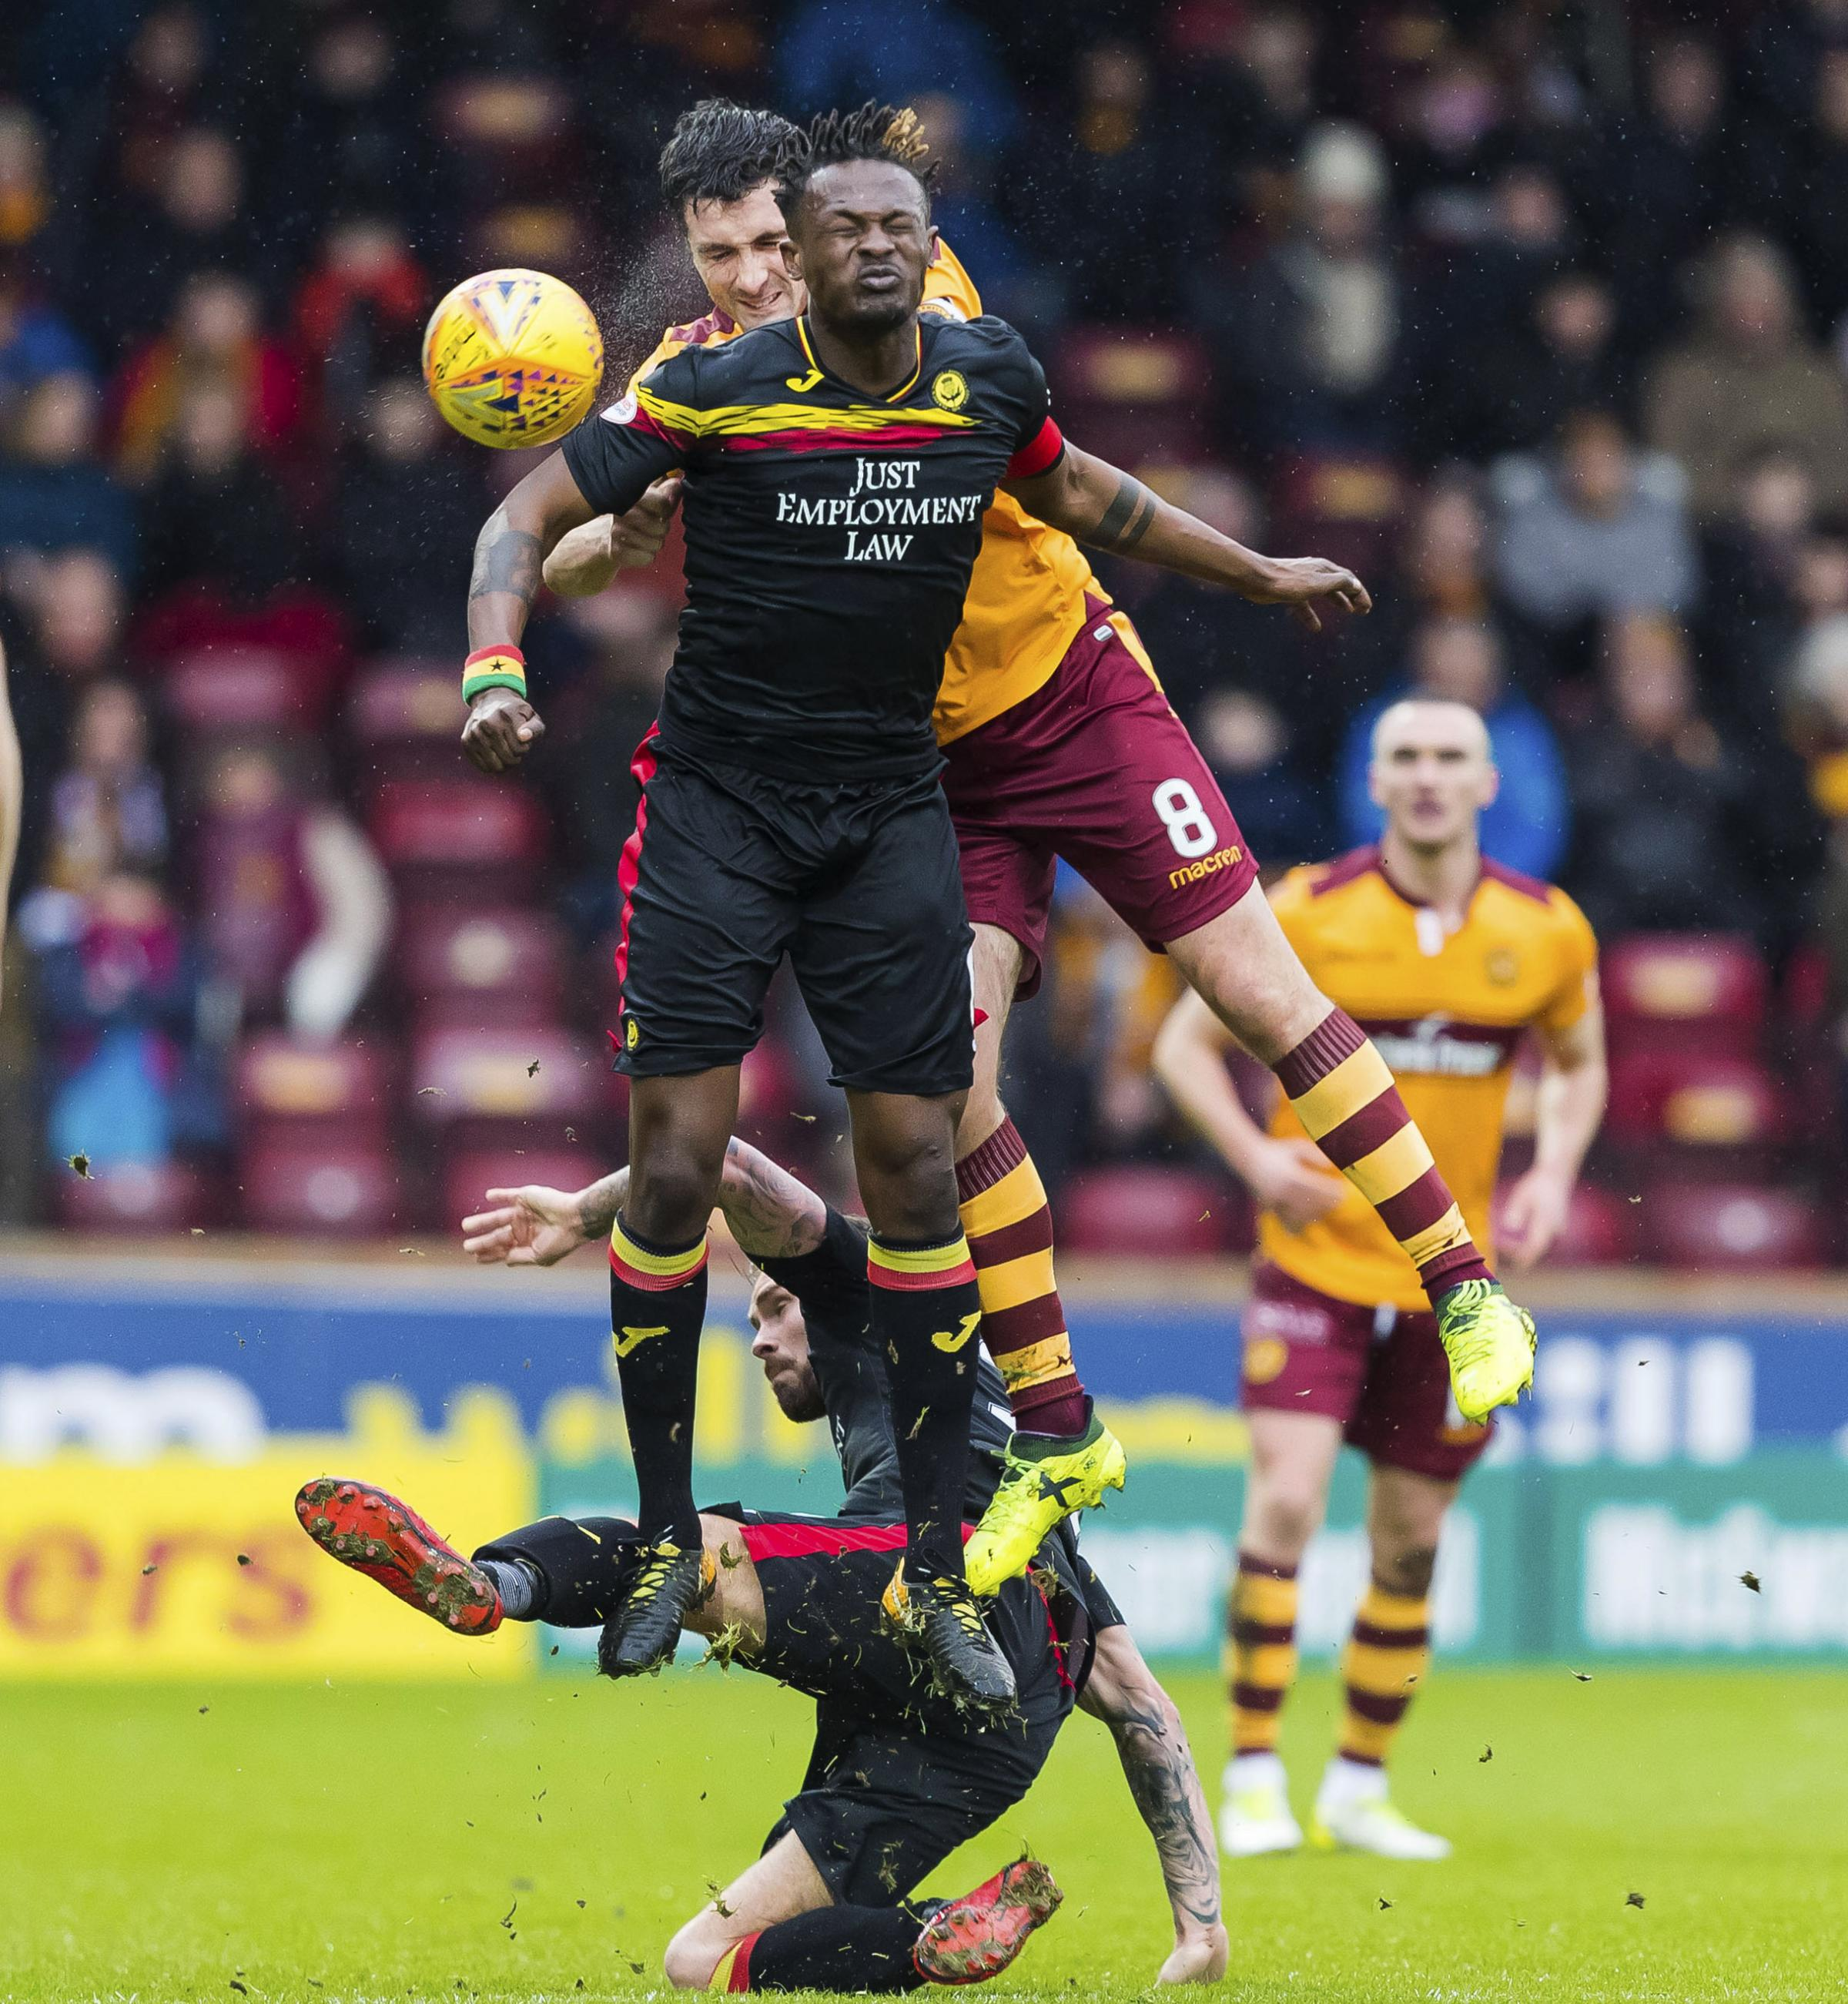 03/02/18  LADBROKES PREMIERSHIP . MOTHERWELL V PARTICK THISTLE . FIR PARK - MOTHERWELL . Motherwell's Carl McHugh (8) in action against Abdul Osman.